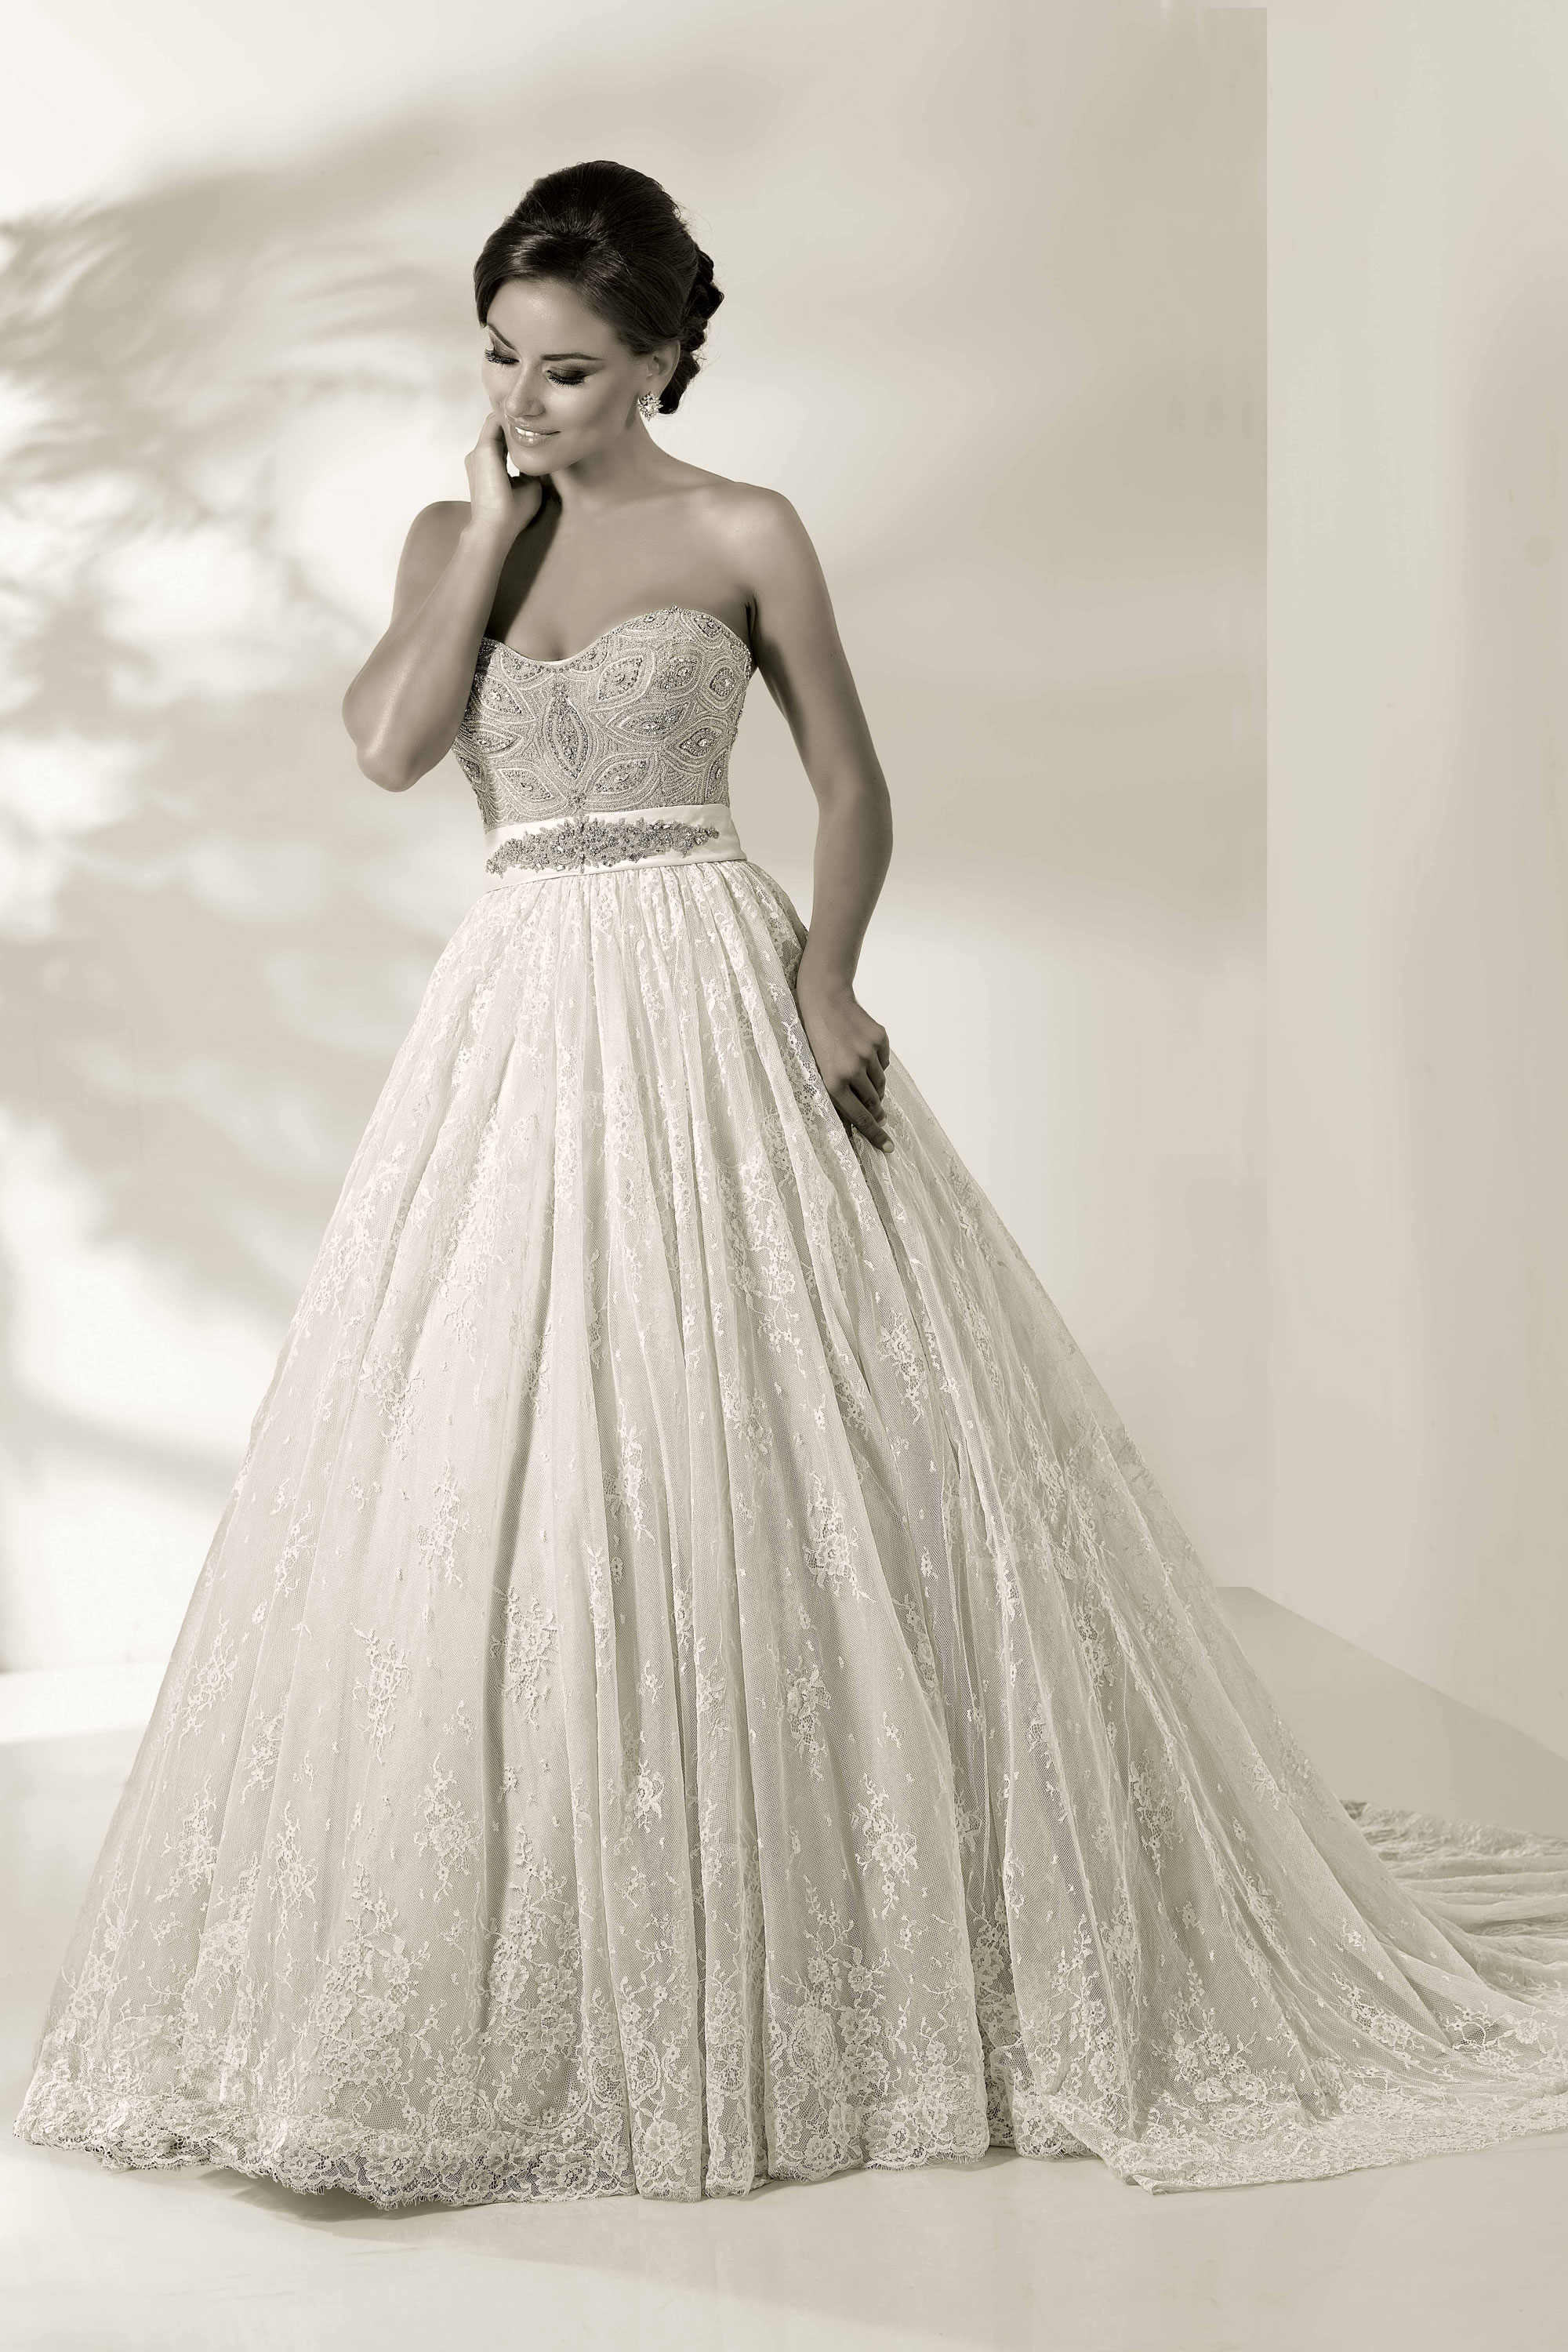 cristiano-lucci-wedding-dresses-5-01052014